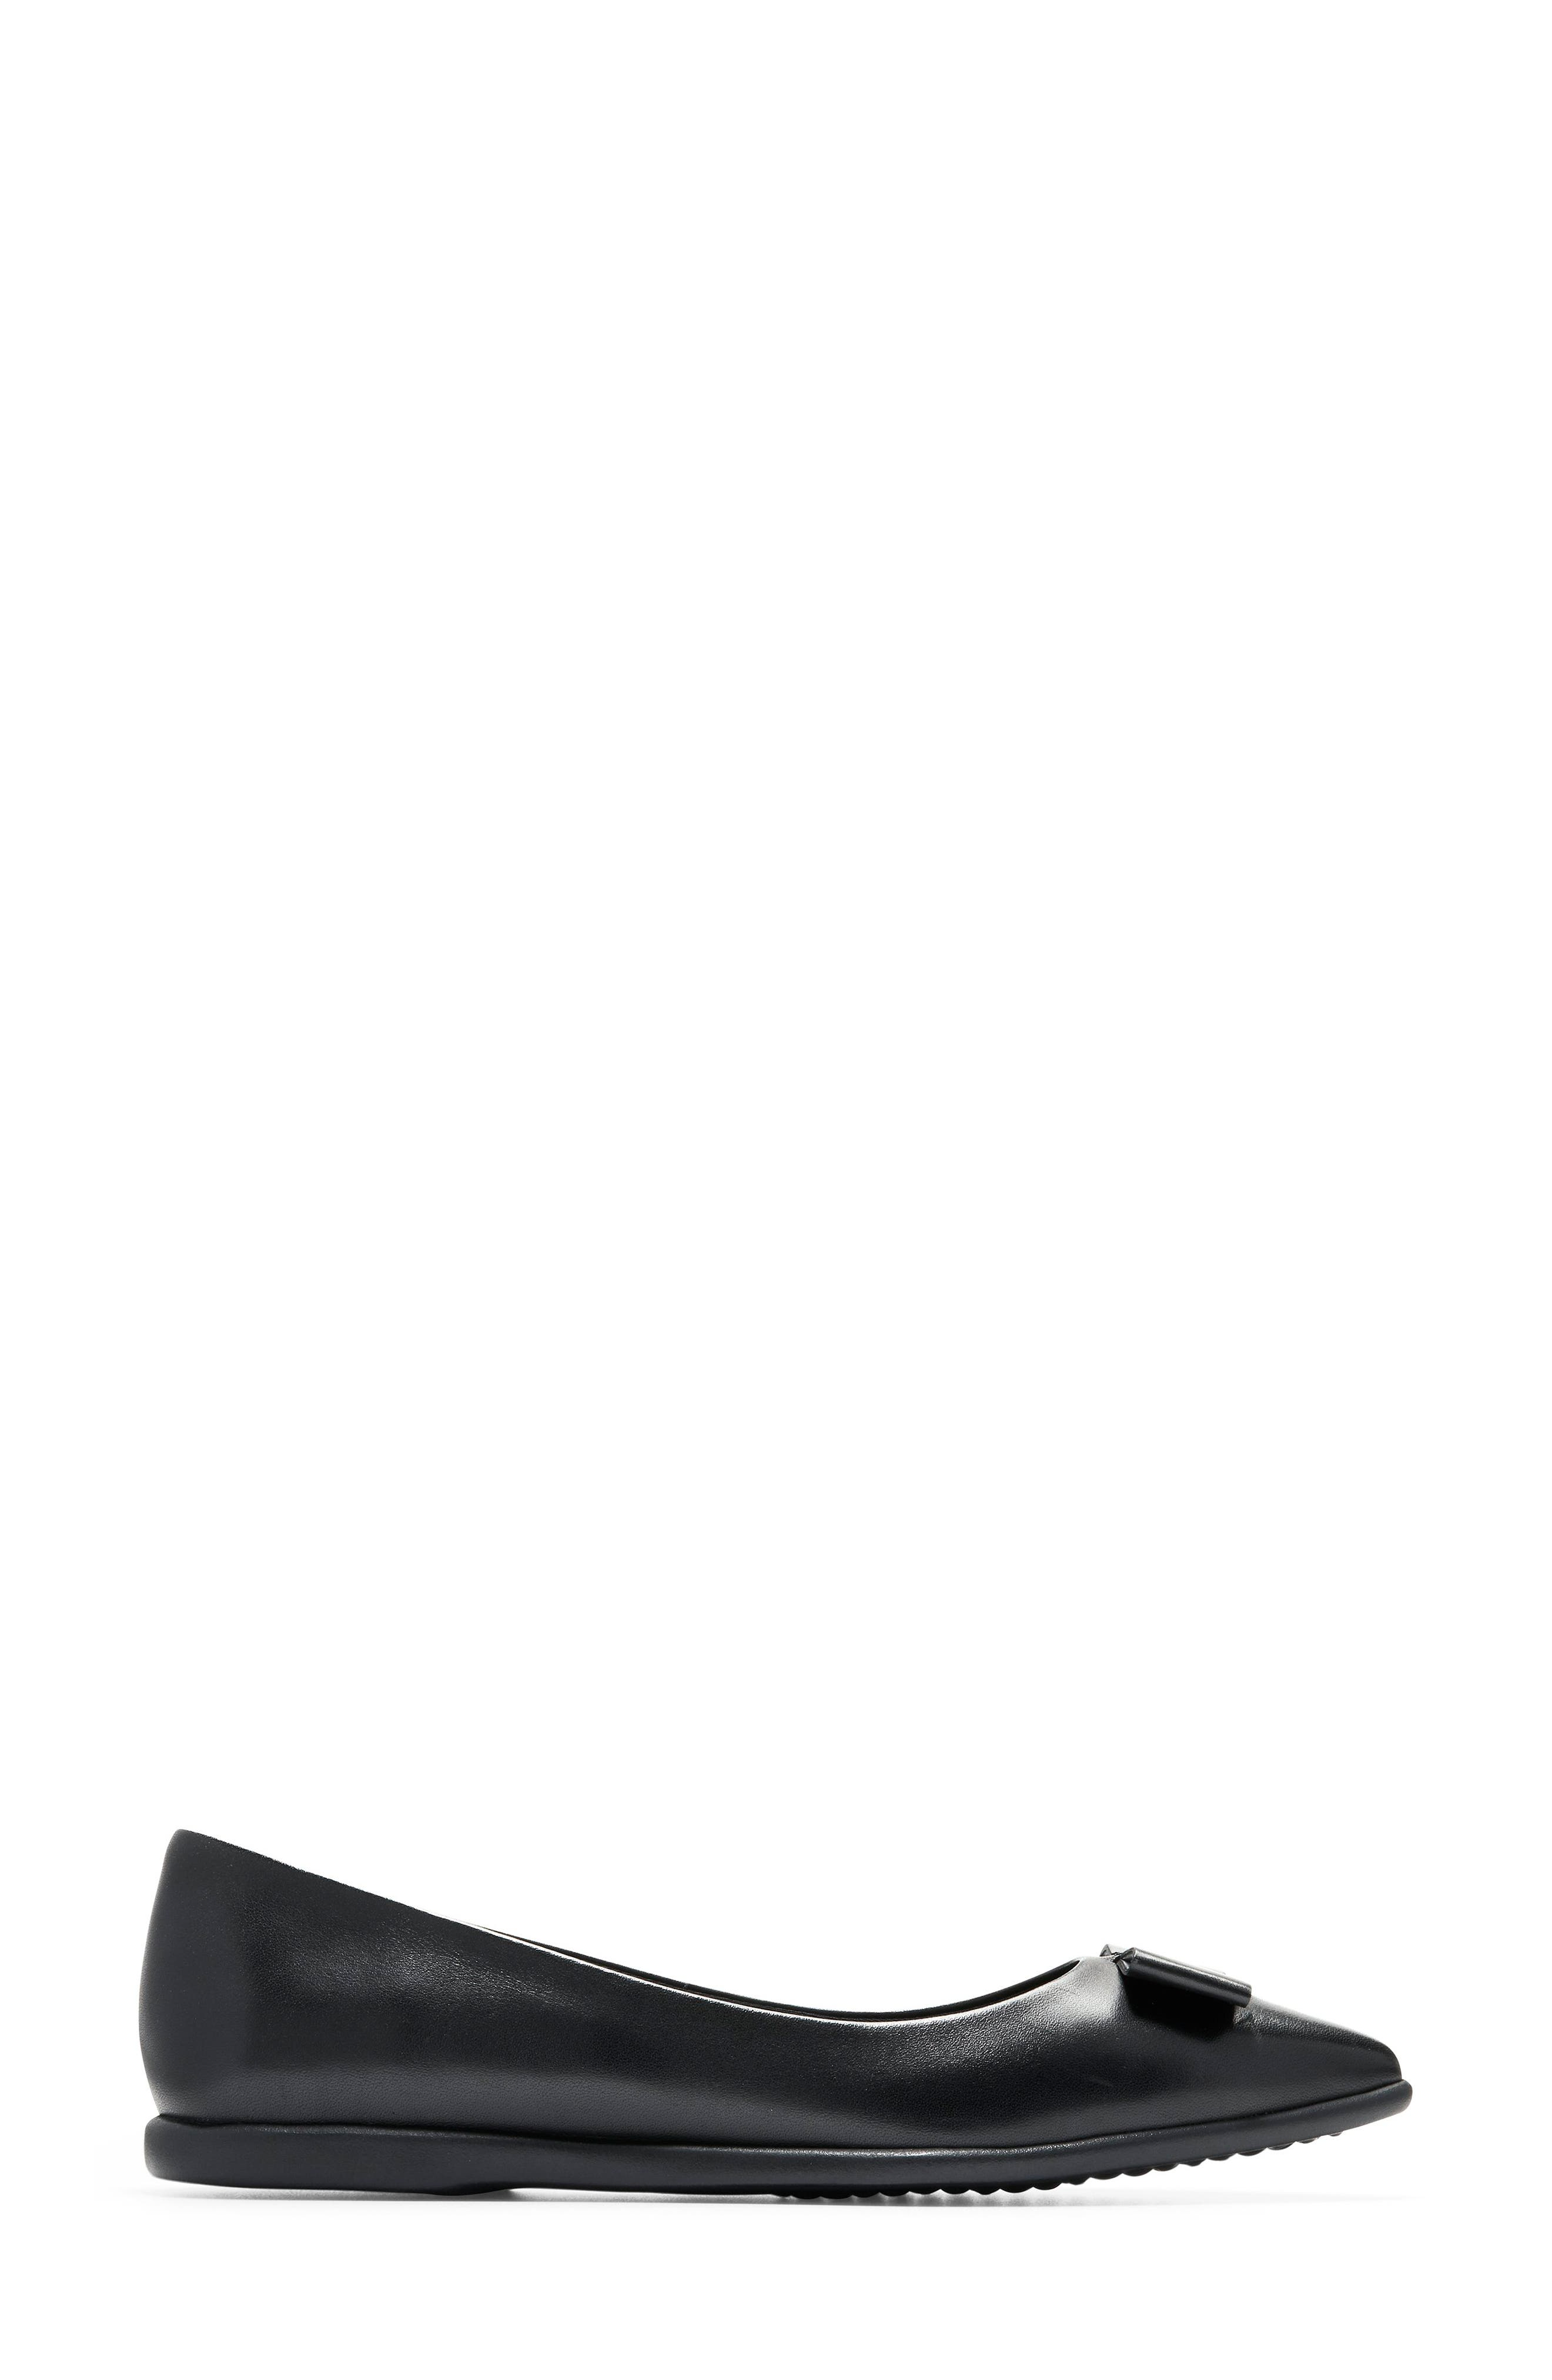 COLE HAAN, 3.ZeroGrand Skimmer Flat, Alternate thumbnail 3, color, BLACK LEATHER